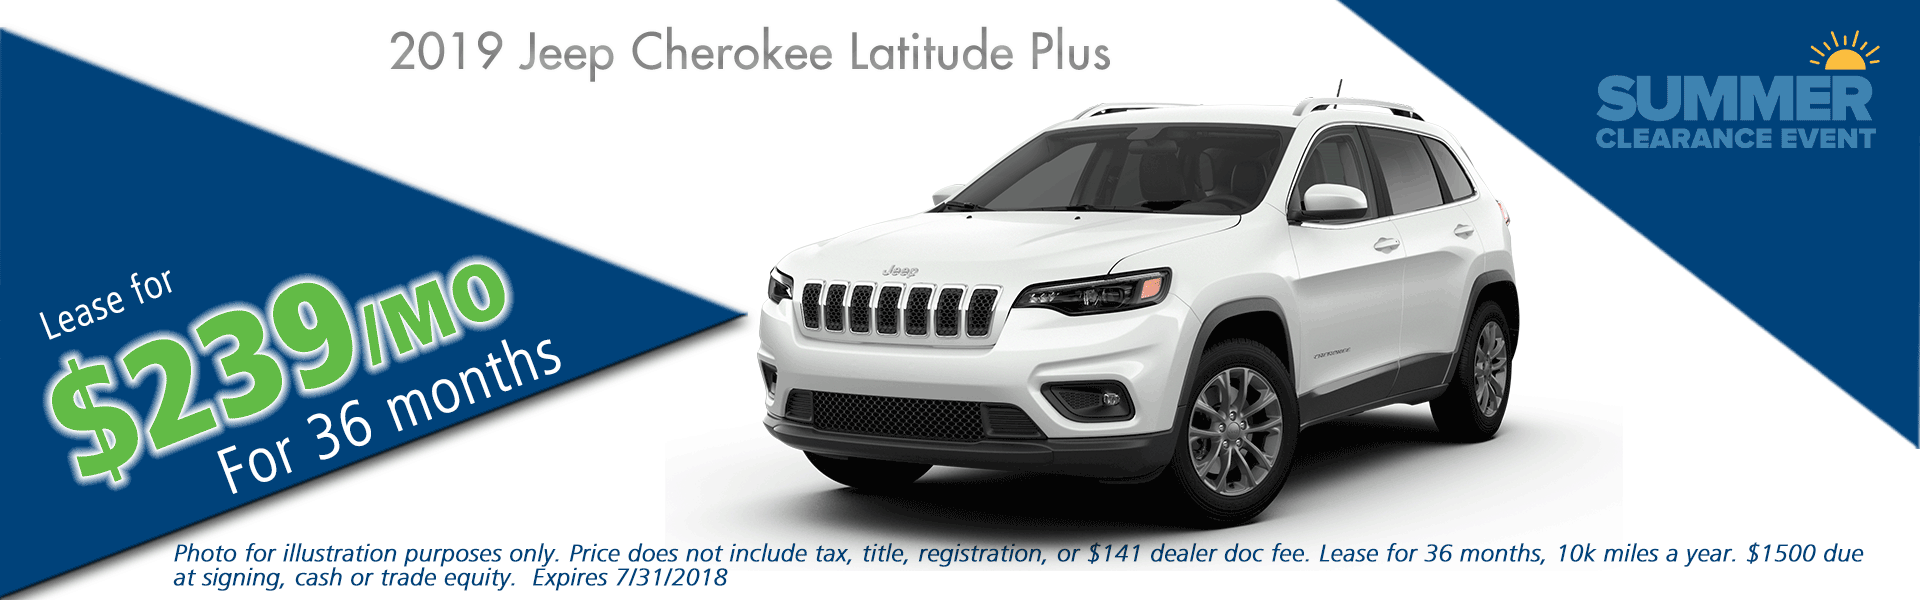 CarRight Auto Moon Township PA Chrysler Dodge Jeep Ram NEW 2019 JEEP CHEROKEE LATITUDE PLUS 4X4